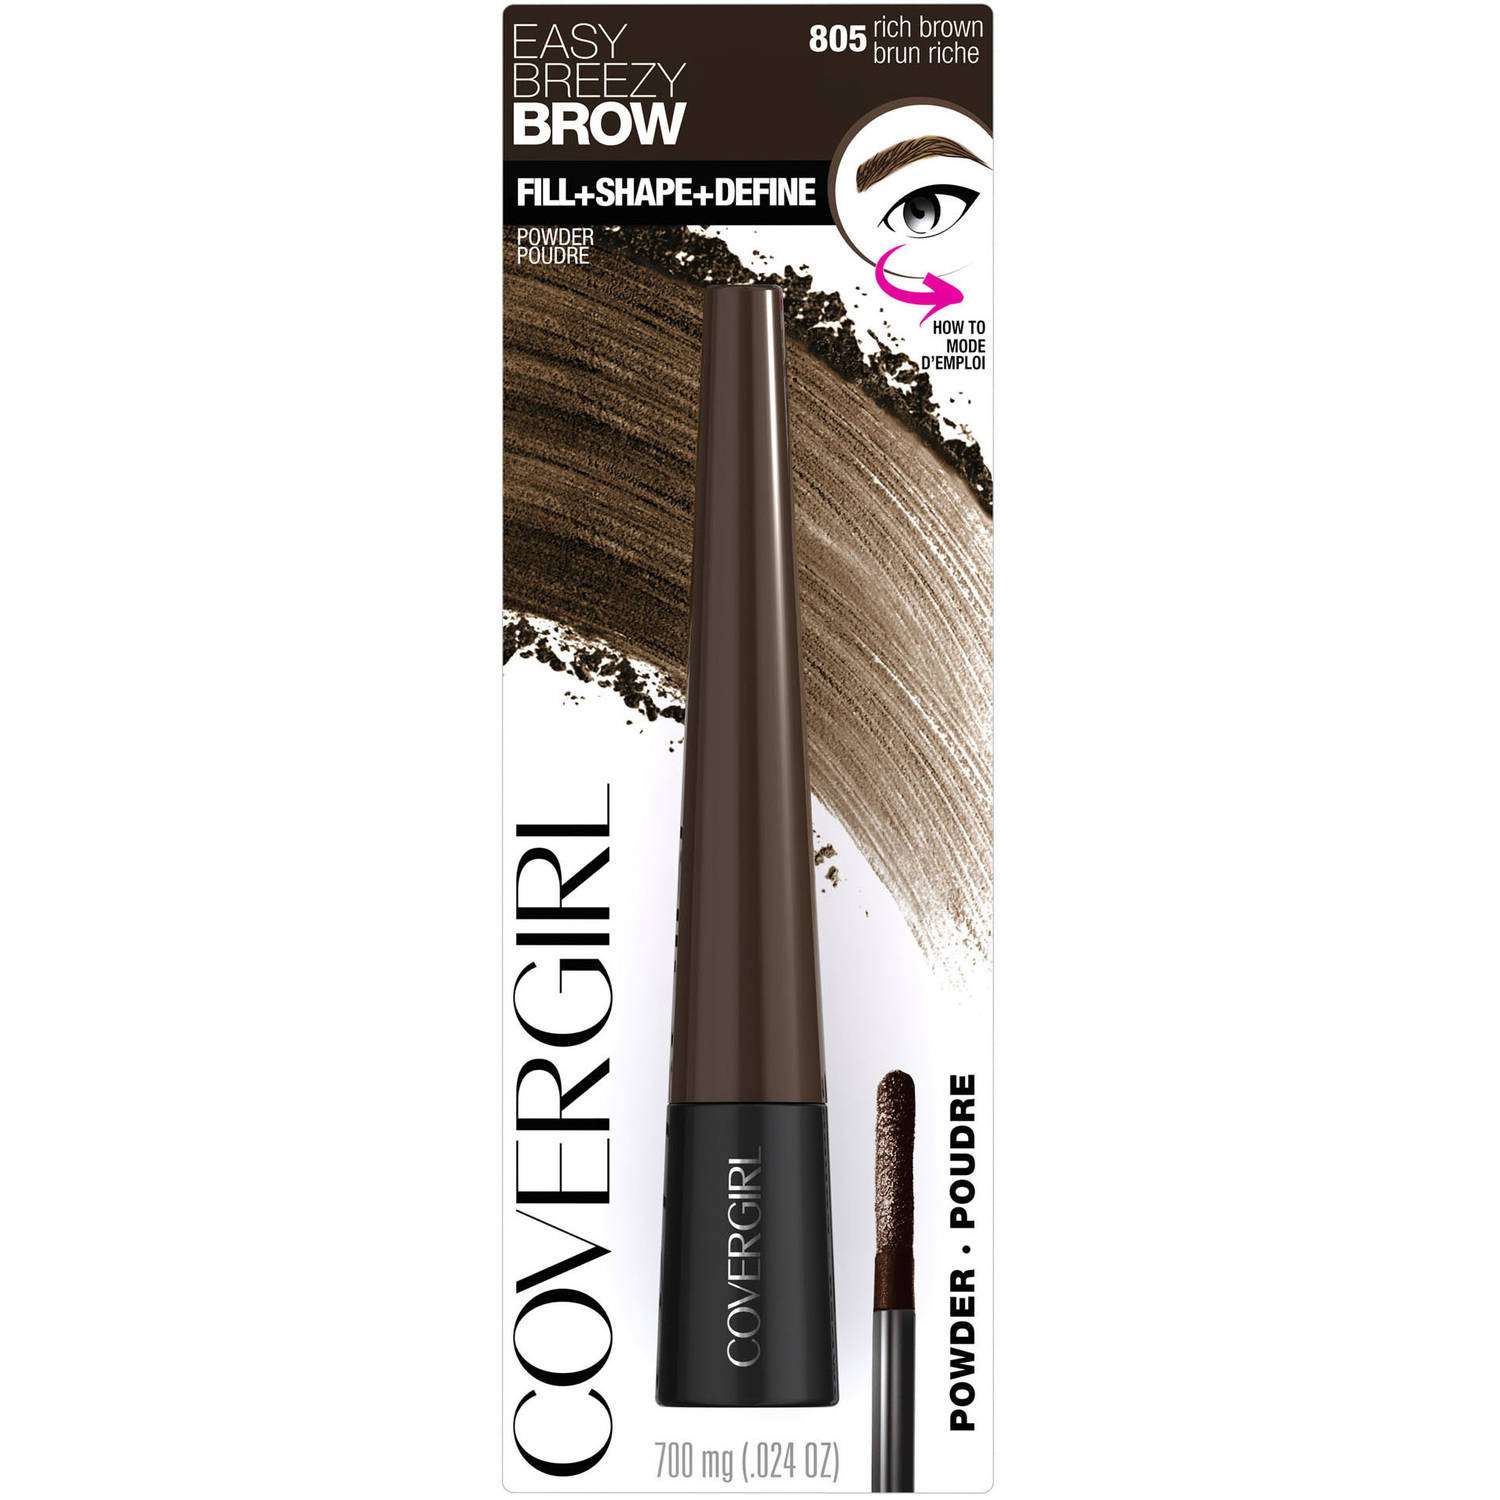 COVERGIRL Easy Breezy Brow Fill + Shape + Define Powder Eyebrow Makeup, Rich Brown